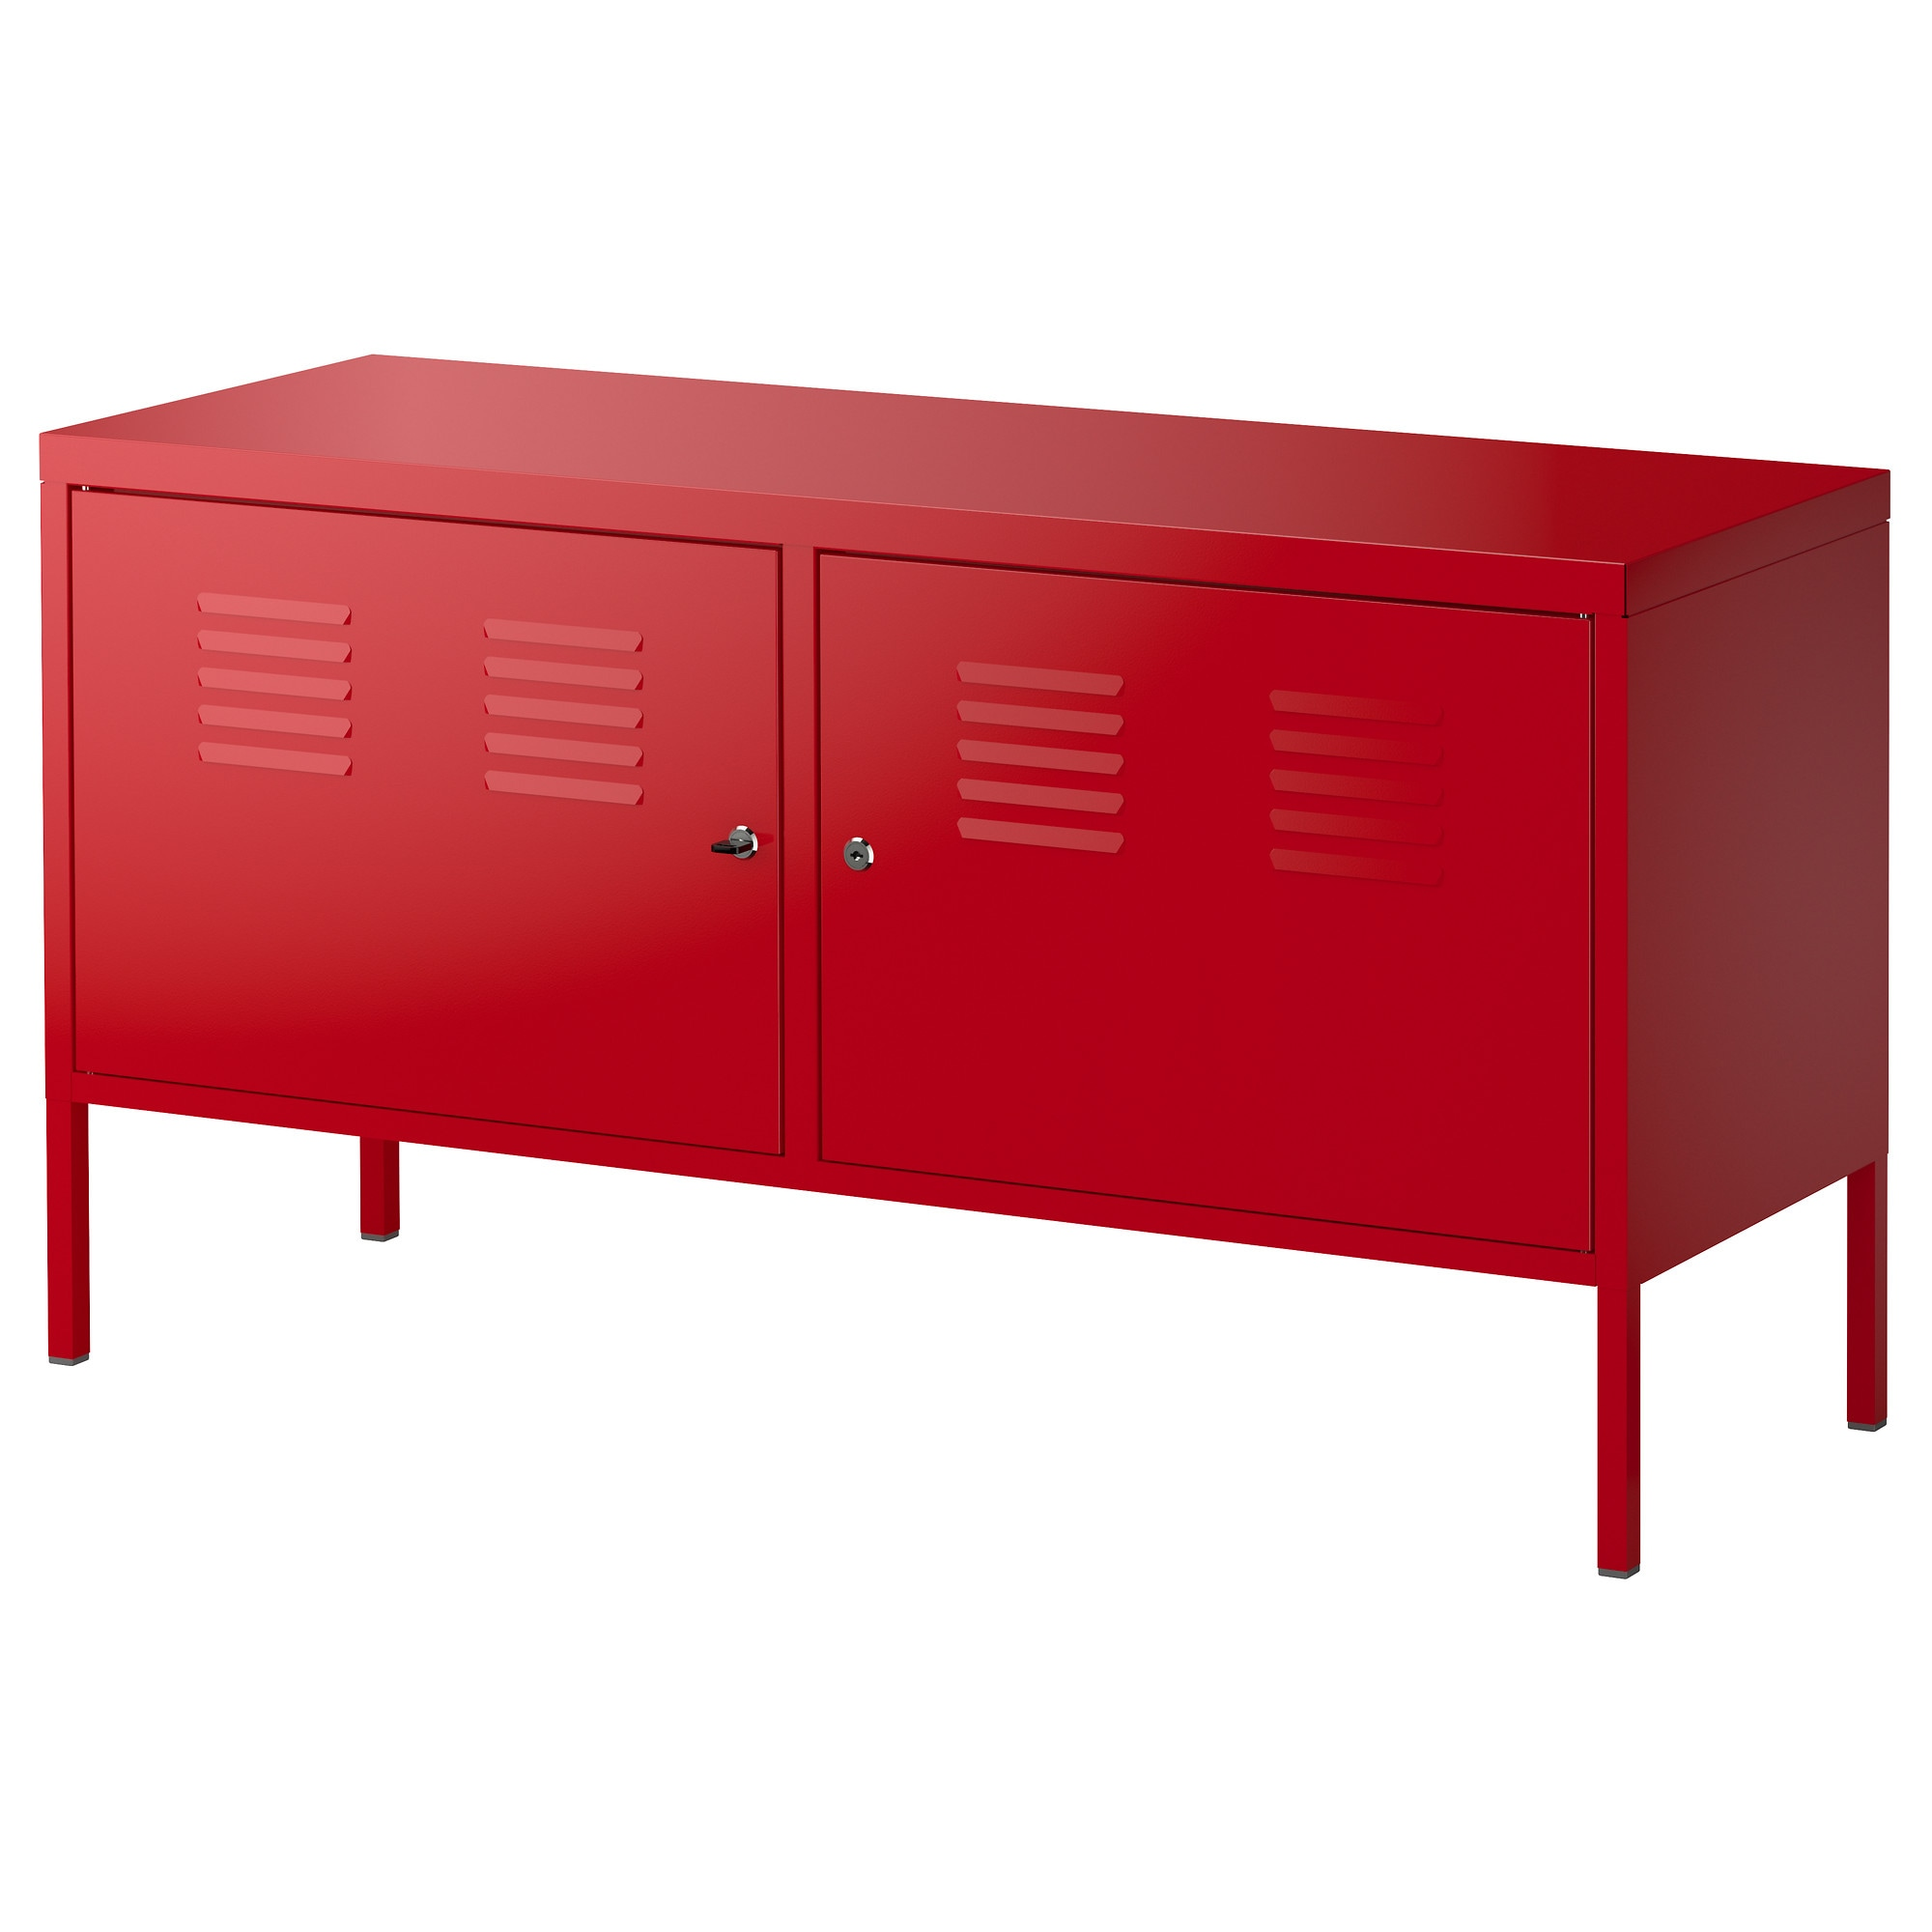 Buffet table furniture ikea - Ikea Ps Cabinet Red Width 46 7 8 Depth 15 3